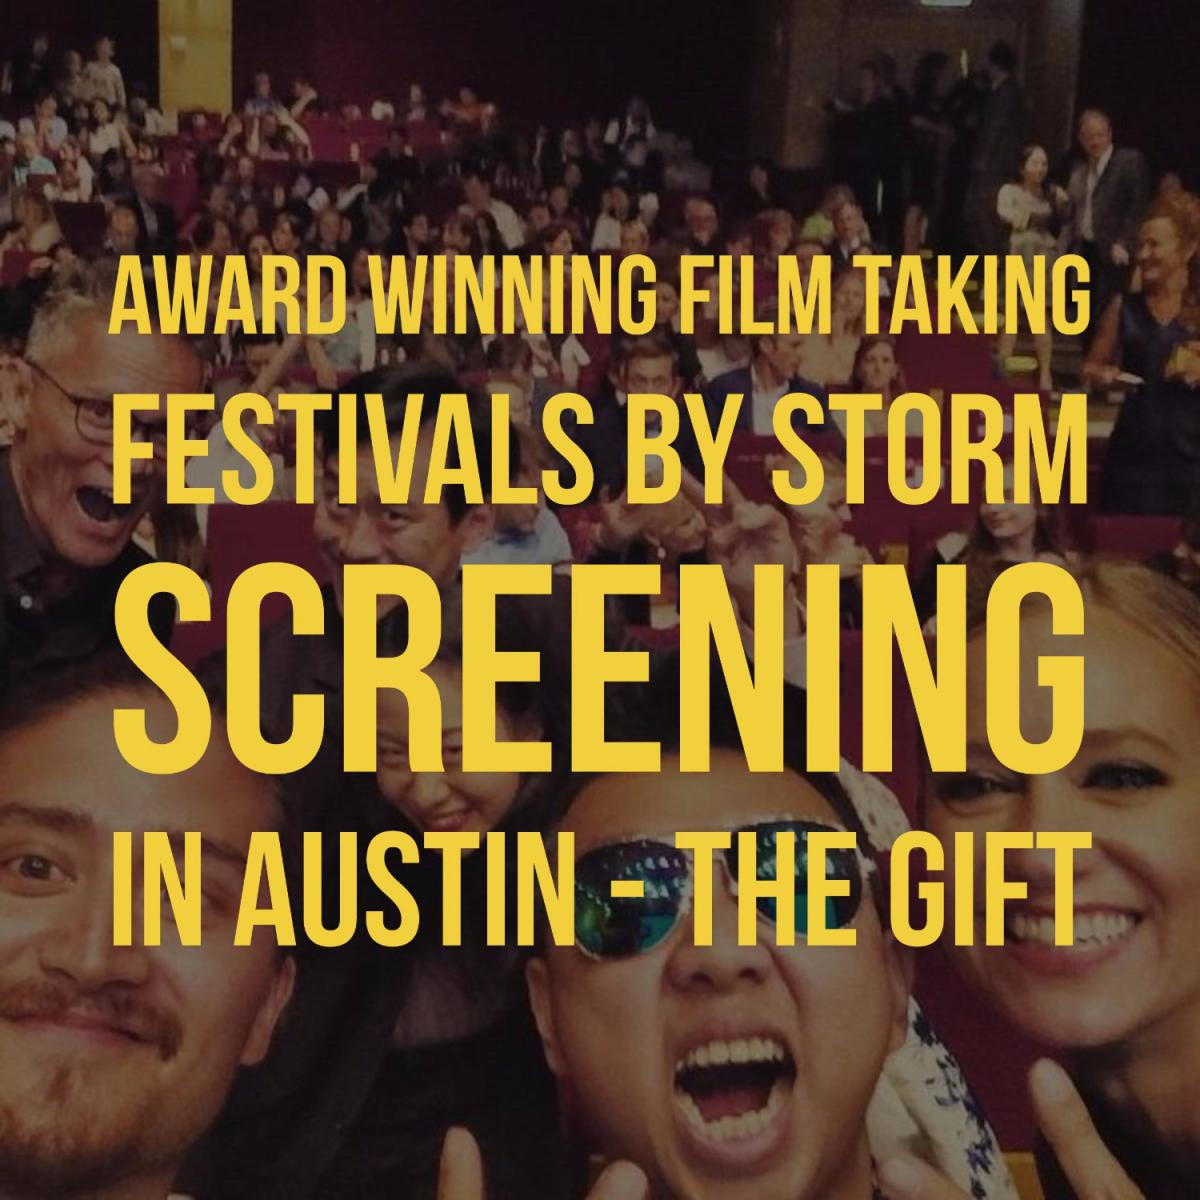 Austin Revolution Film Festival: Lisa Belcher's 'The Gift' Keeps on Giving